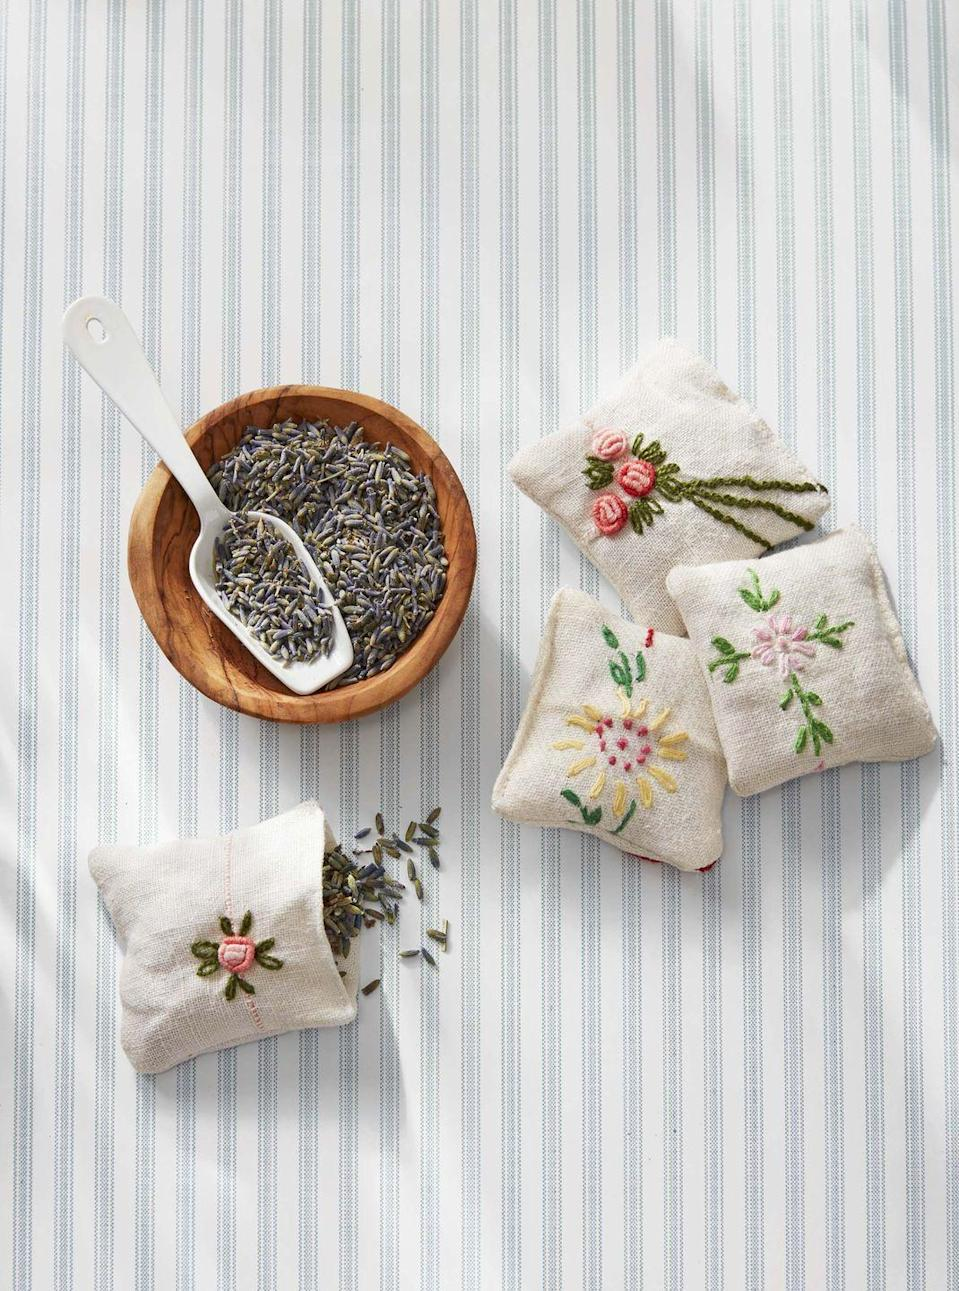 """<p>Mom will love a sweet-smelling lavender sachet to brighten up her purse or drawer. <strong><br></strong></p><p><strong>To make</strong>: Cut a 2-by-4-inch rectangle from a handkerchief. Fold in half crosswise with the pattern facing inward. Stitch two sides closed with a sewing machine; turn pouch right-side out. Fill with dried lavender. Hand-stitch opening closed.</p><p><a class=""""link rapid-noclick-resp"""" href=""""https://www.amazon.com/Organic-Lavender-Flowers-Extra-Grade/dp/B01BTNMGXU/ref=sr_1_1_sspa?tag=syn-yahoo-20&ascsubtag=%5Bartid%7C10050.g.2357%5Bsrc%7Cyahoo-us"""" rel=""""nofollow noopener"""" target=""""_blank"""" data-ylk=""""slk:SHOP DRIED LAVENDER"""">SHOP DRIED LAVENDER</a></p>"""